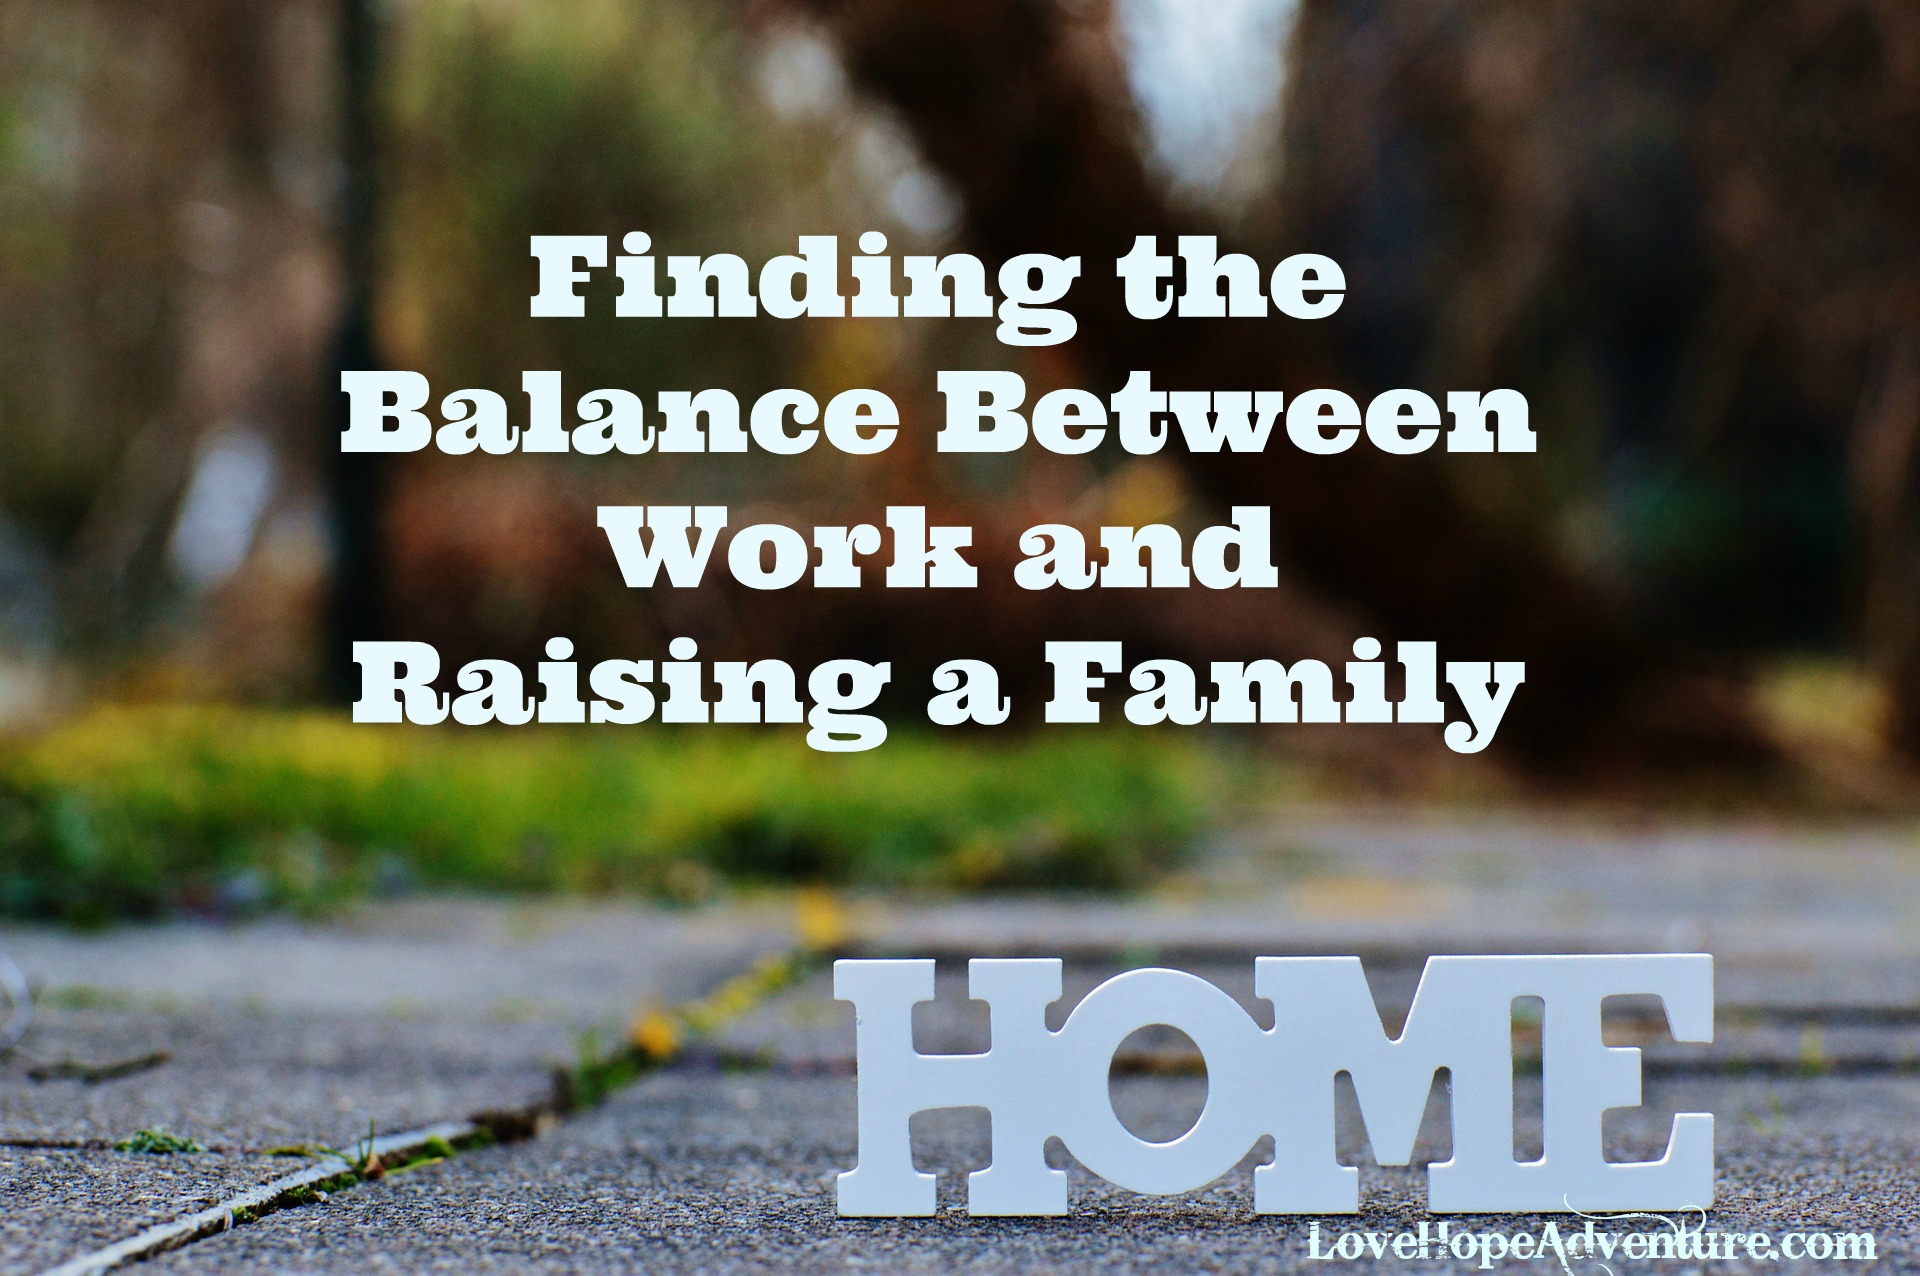 Finding the Balance Between Work and Raising a Family